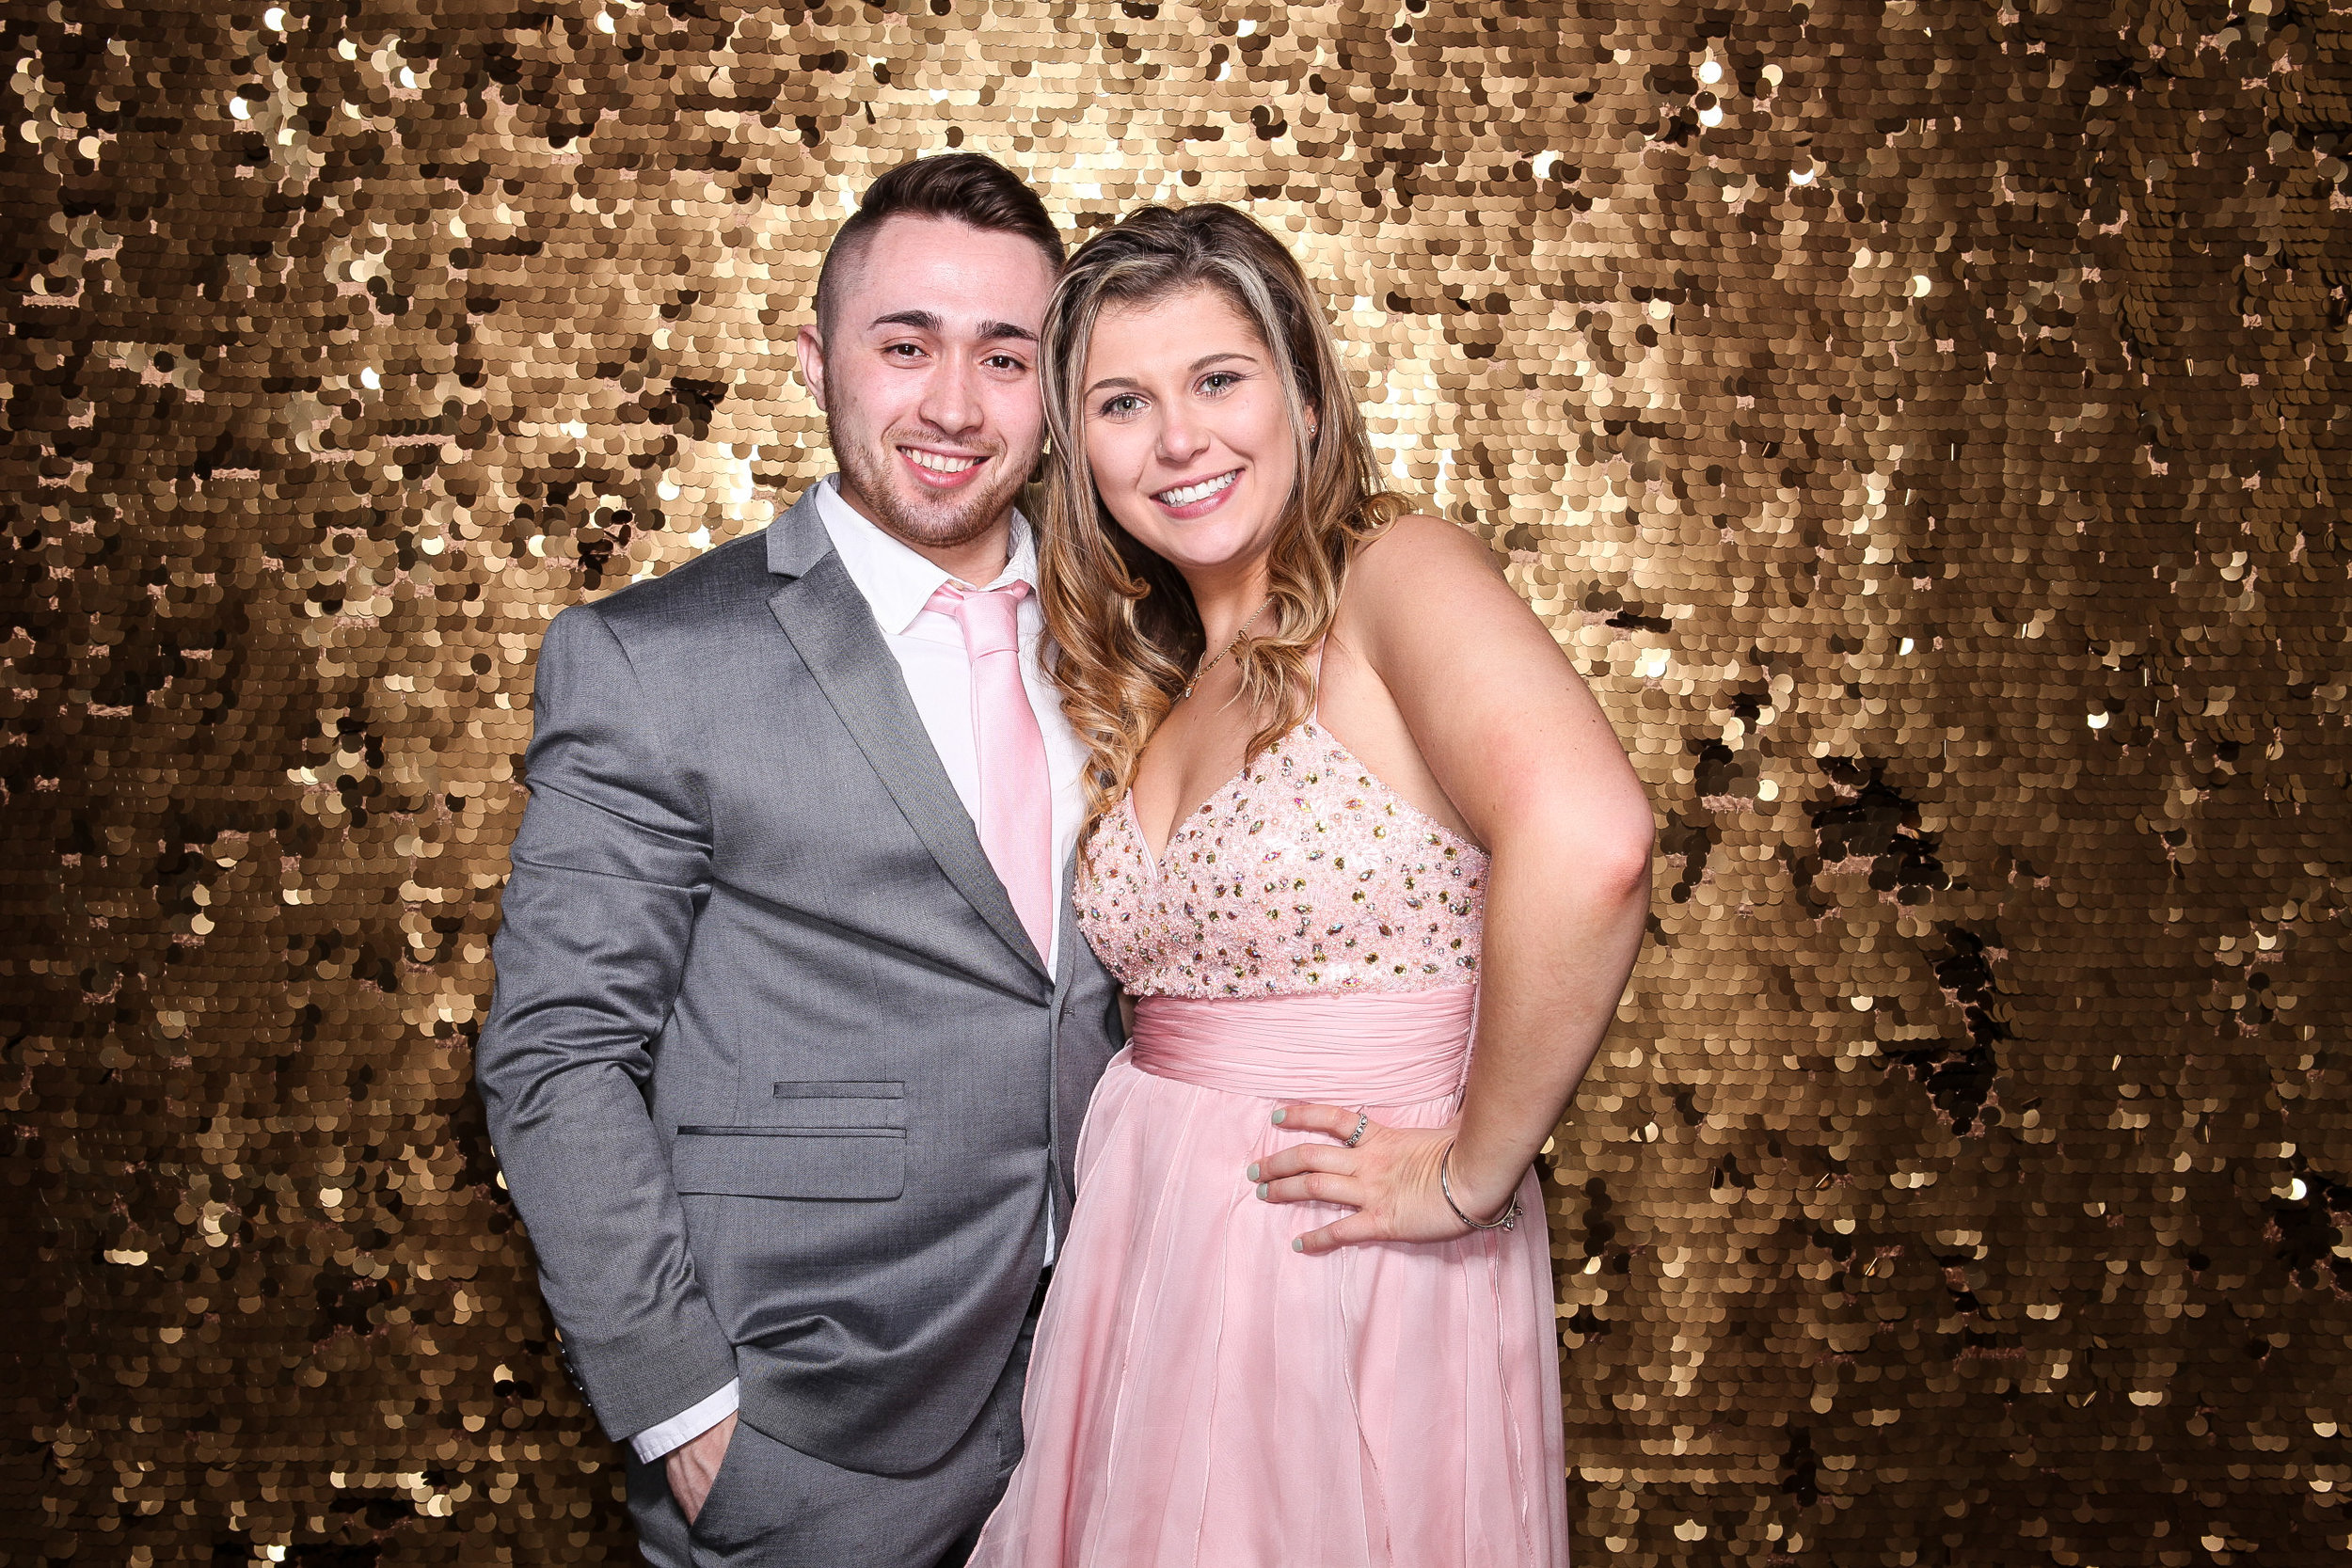 20190503_Adelphi_Senior_Formal-316.jpg